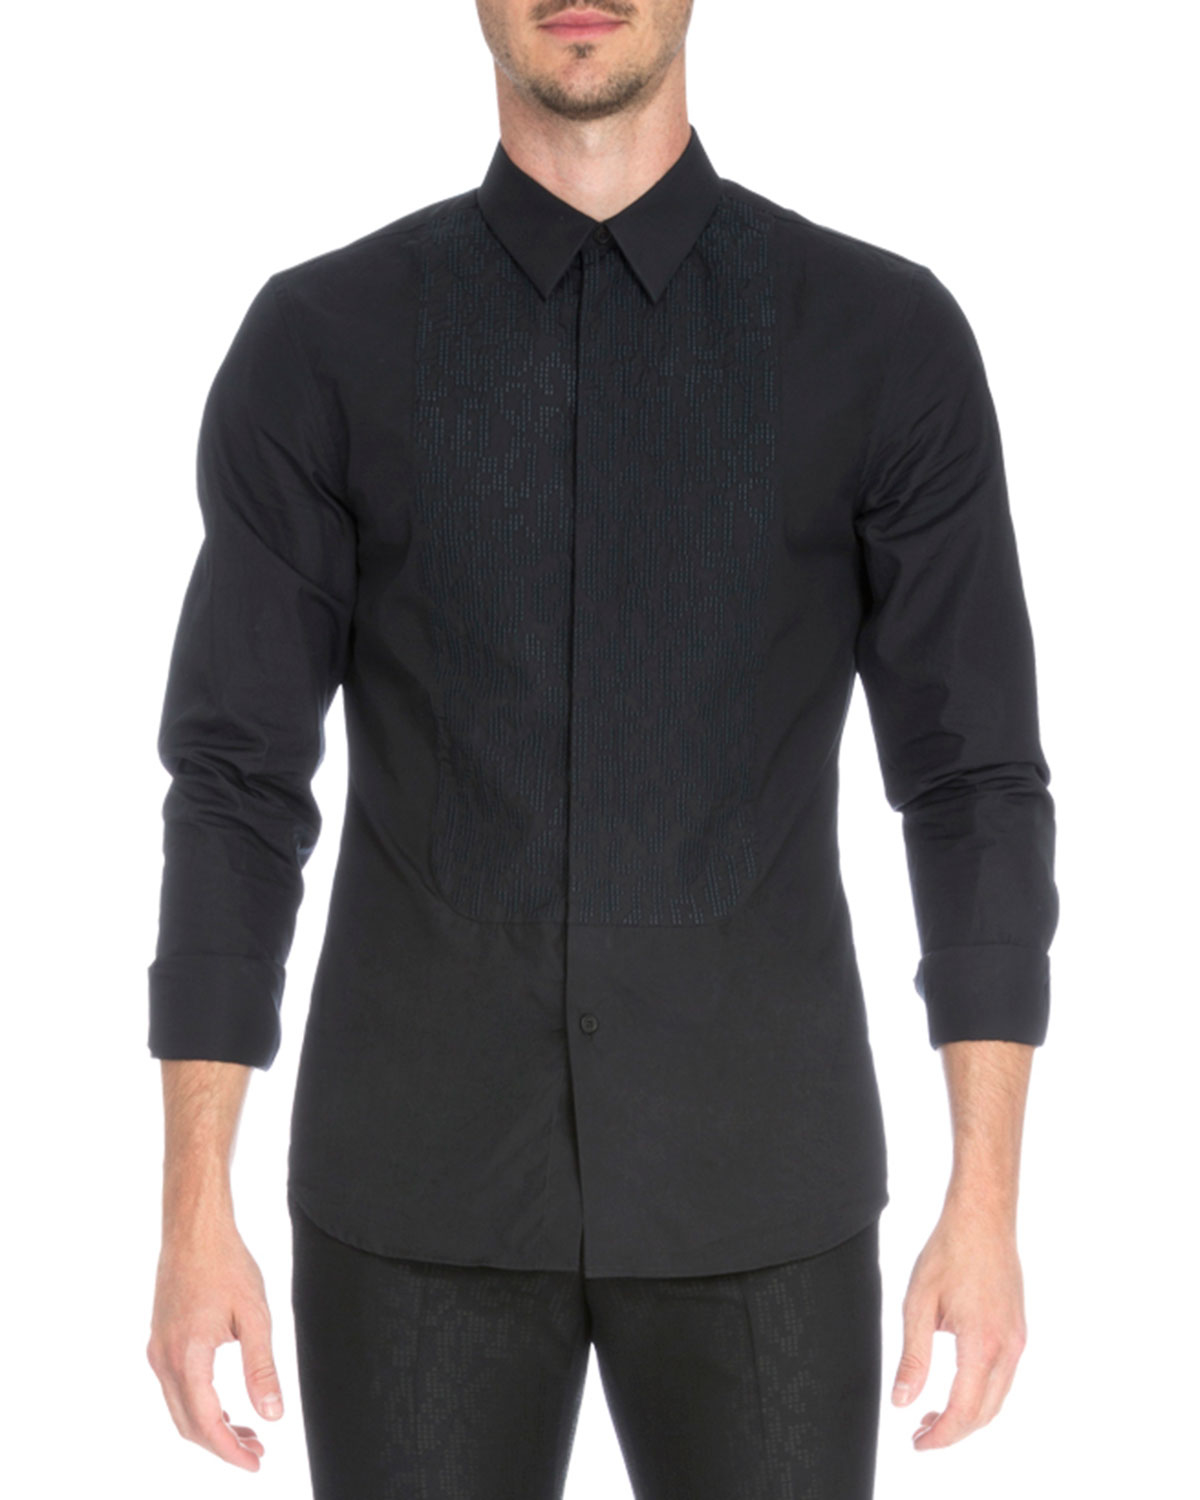 Givenchy Leo Embroidered Bib Tuxedo Shirt In Black For Men